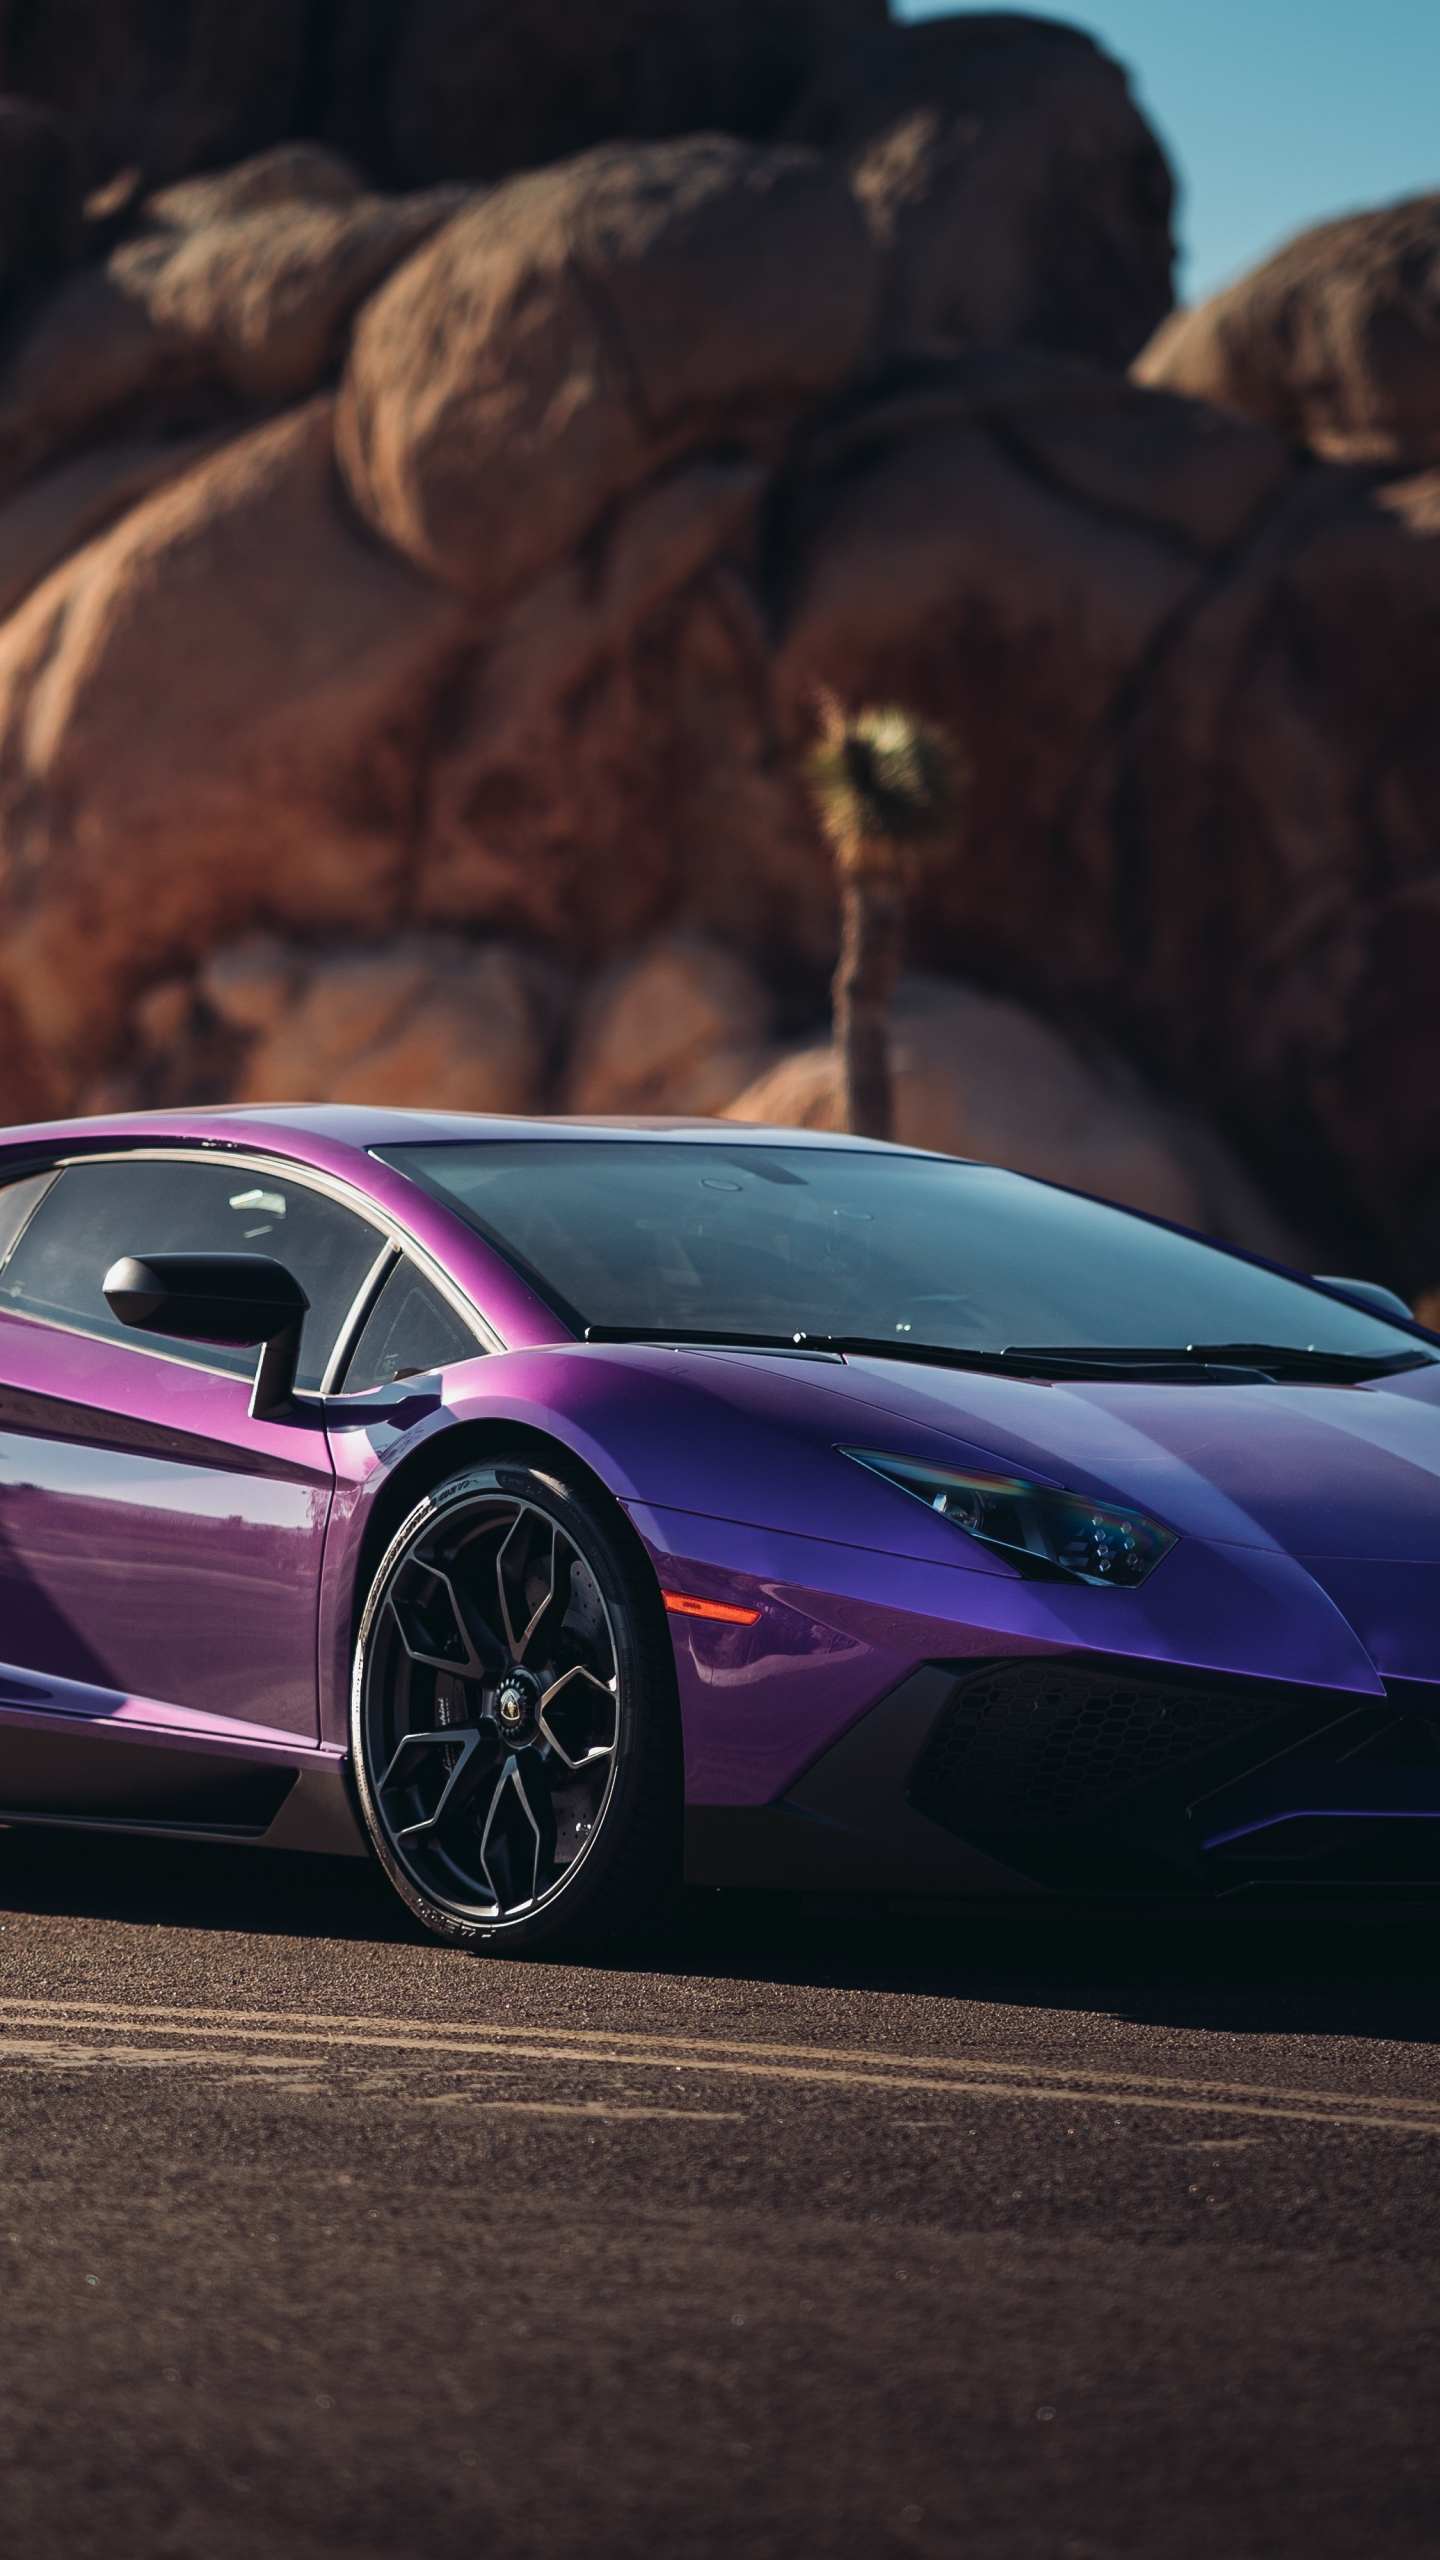 Download 1440x2560 Wallpaper Lamborghini Aventador Lp 750 Sports